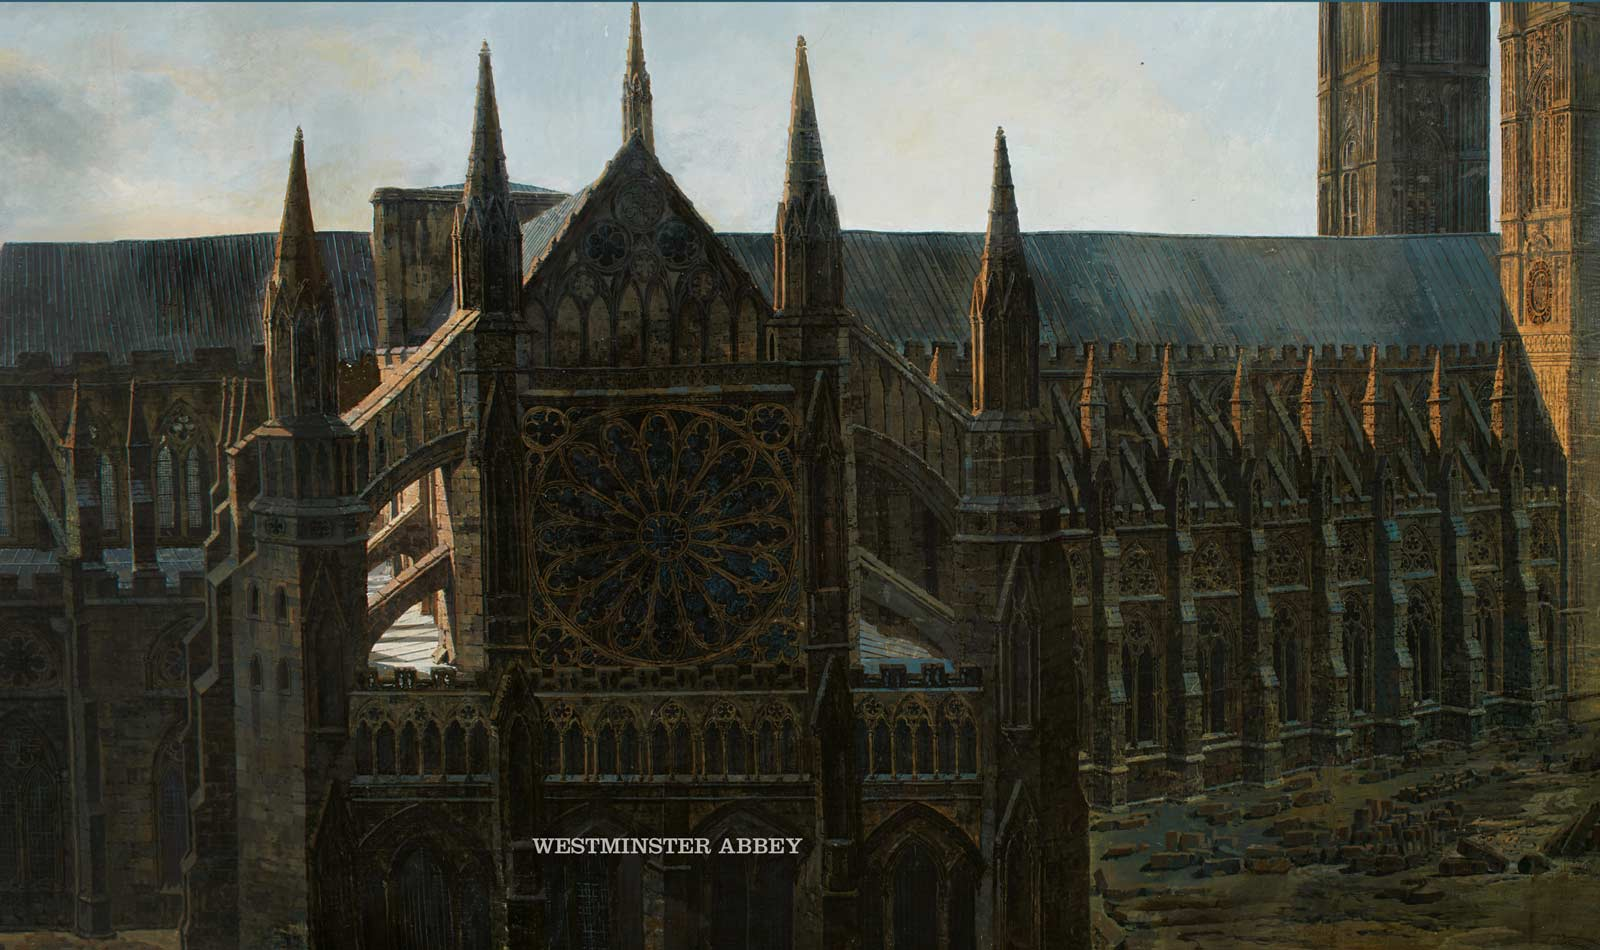 Section of the Prevost Panorama showing Westminster Abbey.